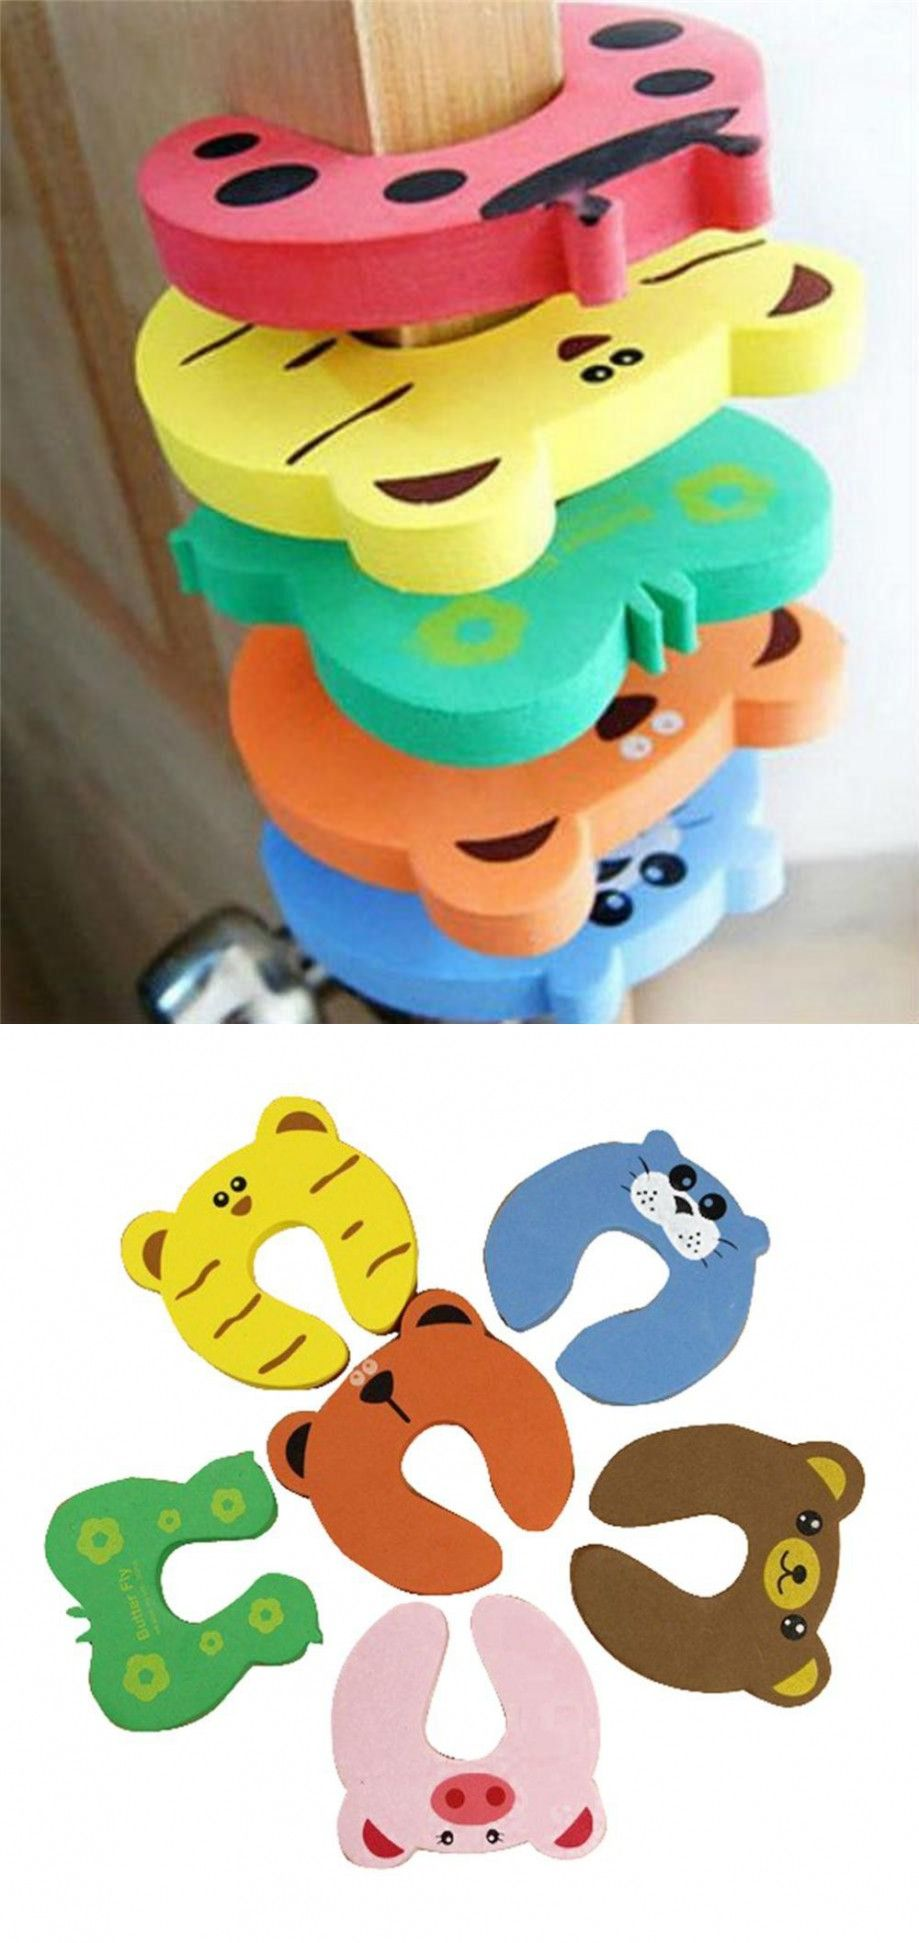 pcs child kids baby animal cartoon jammers stop door stopper